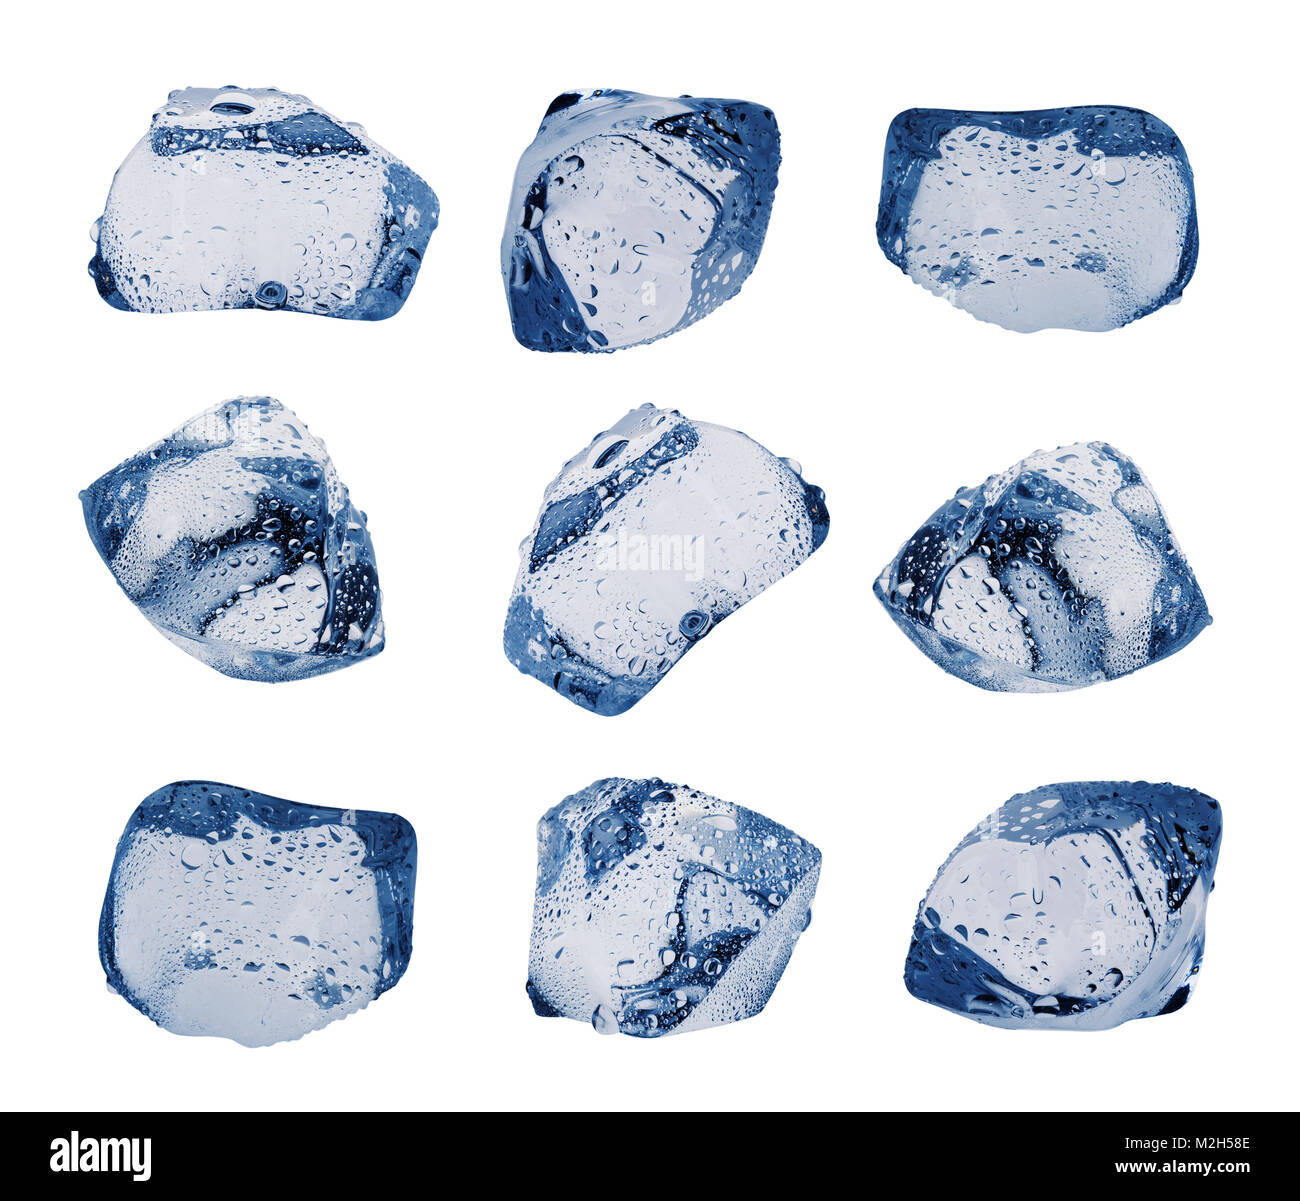 Large variety of ice cubes with droplets isolated on white background. Set. Toning in blue. - Stock Image